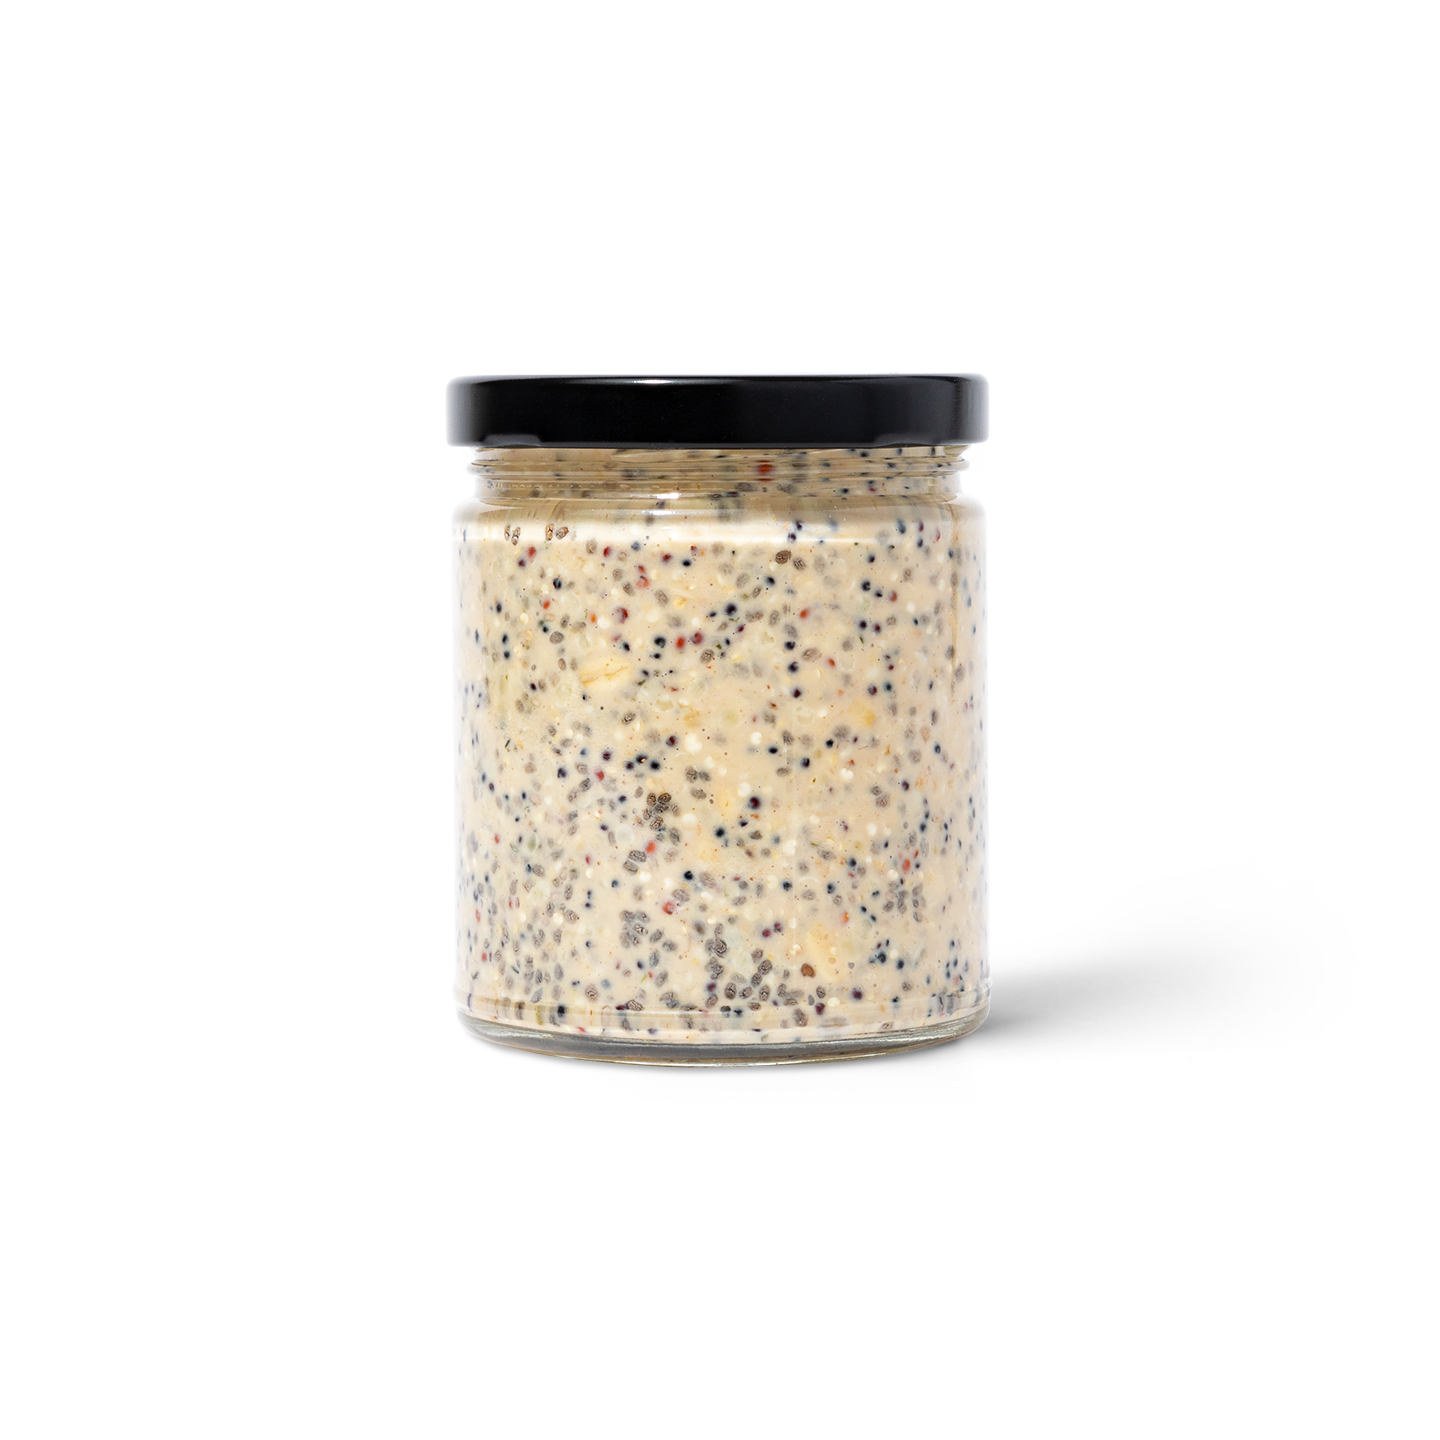 Almond Butter Overnight Oats product image